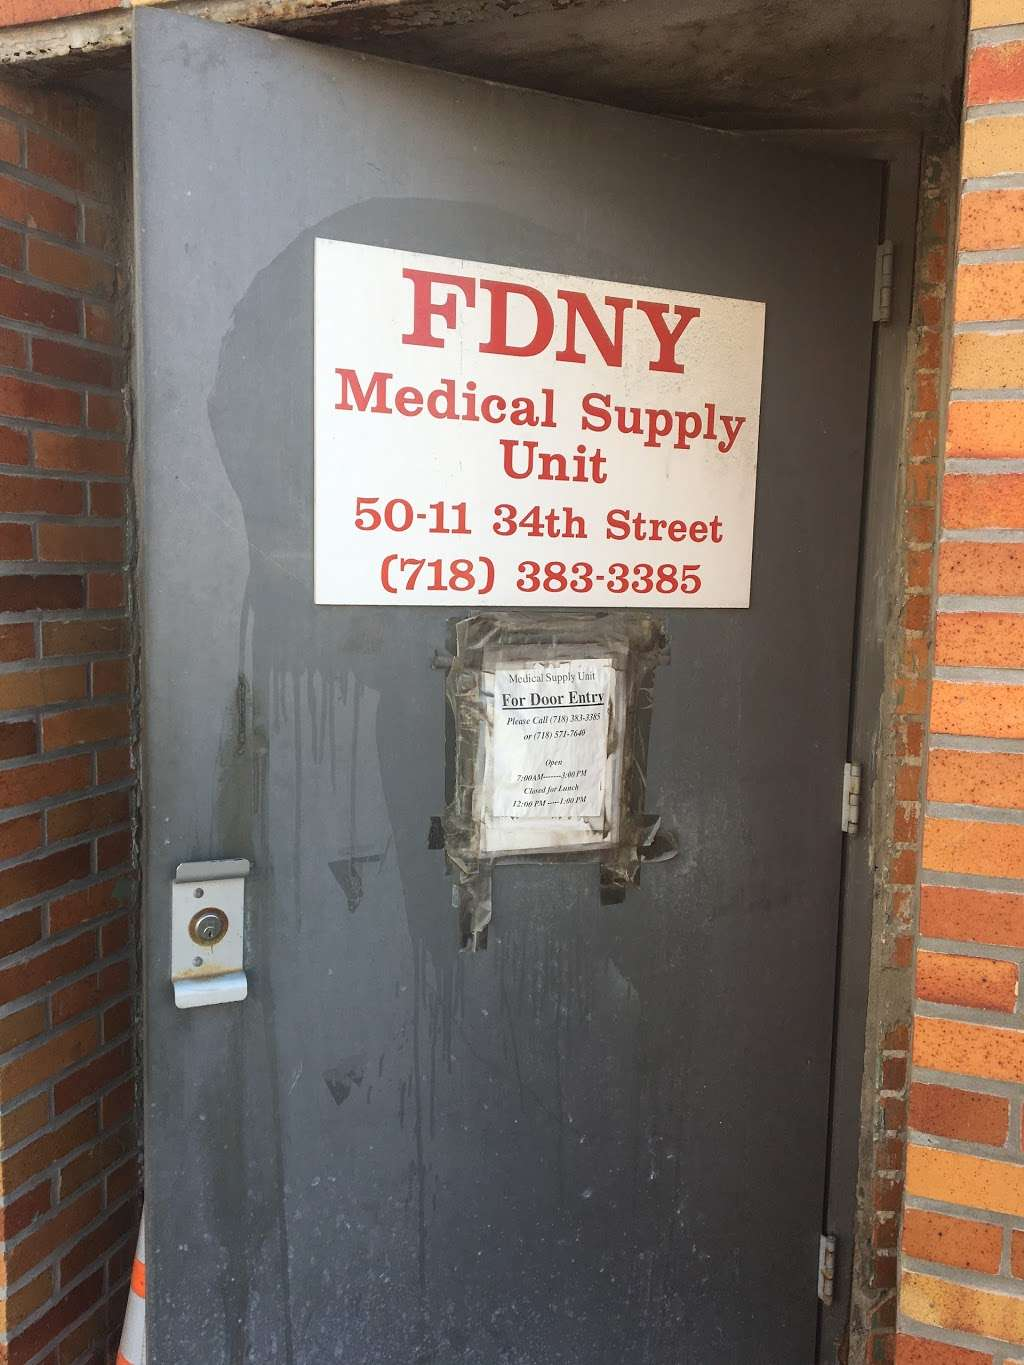 FDNY Medical Supply Unit - storage  | Photo 1 of 1 | Address: 3424 Hunters Point Ave, Long Island City, NY 11101, USA | Phone: (718) 571-7640